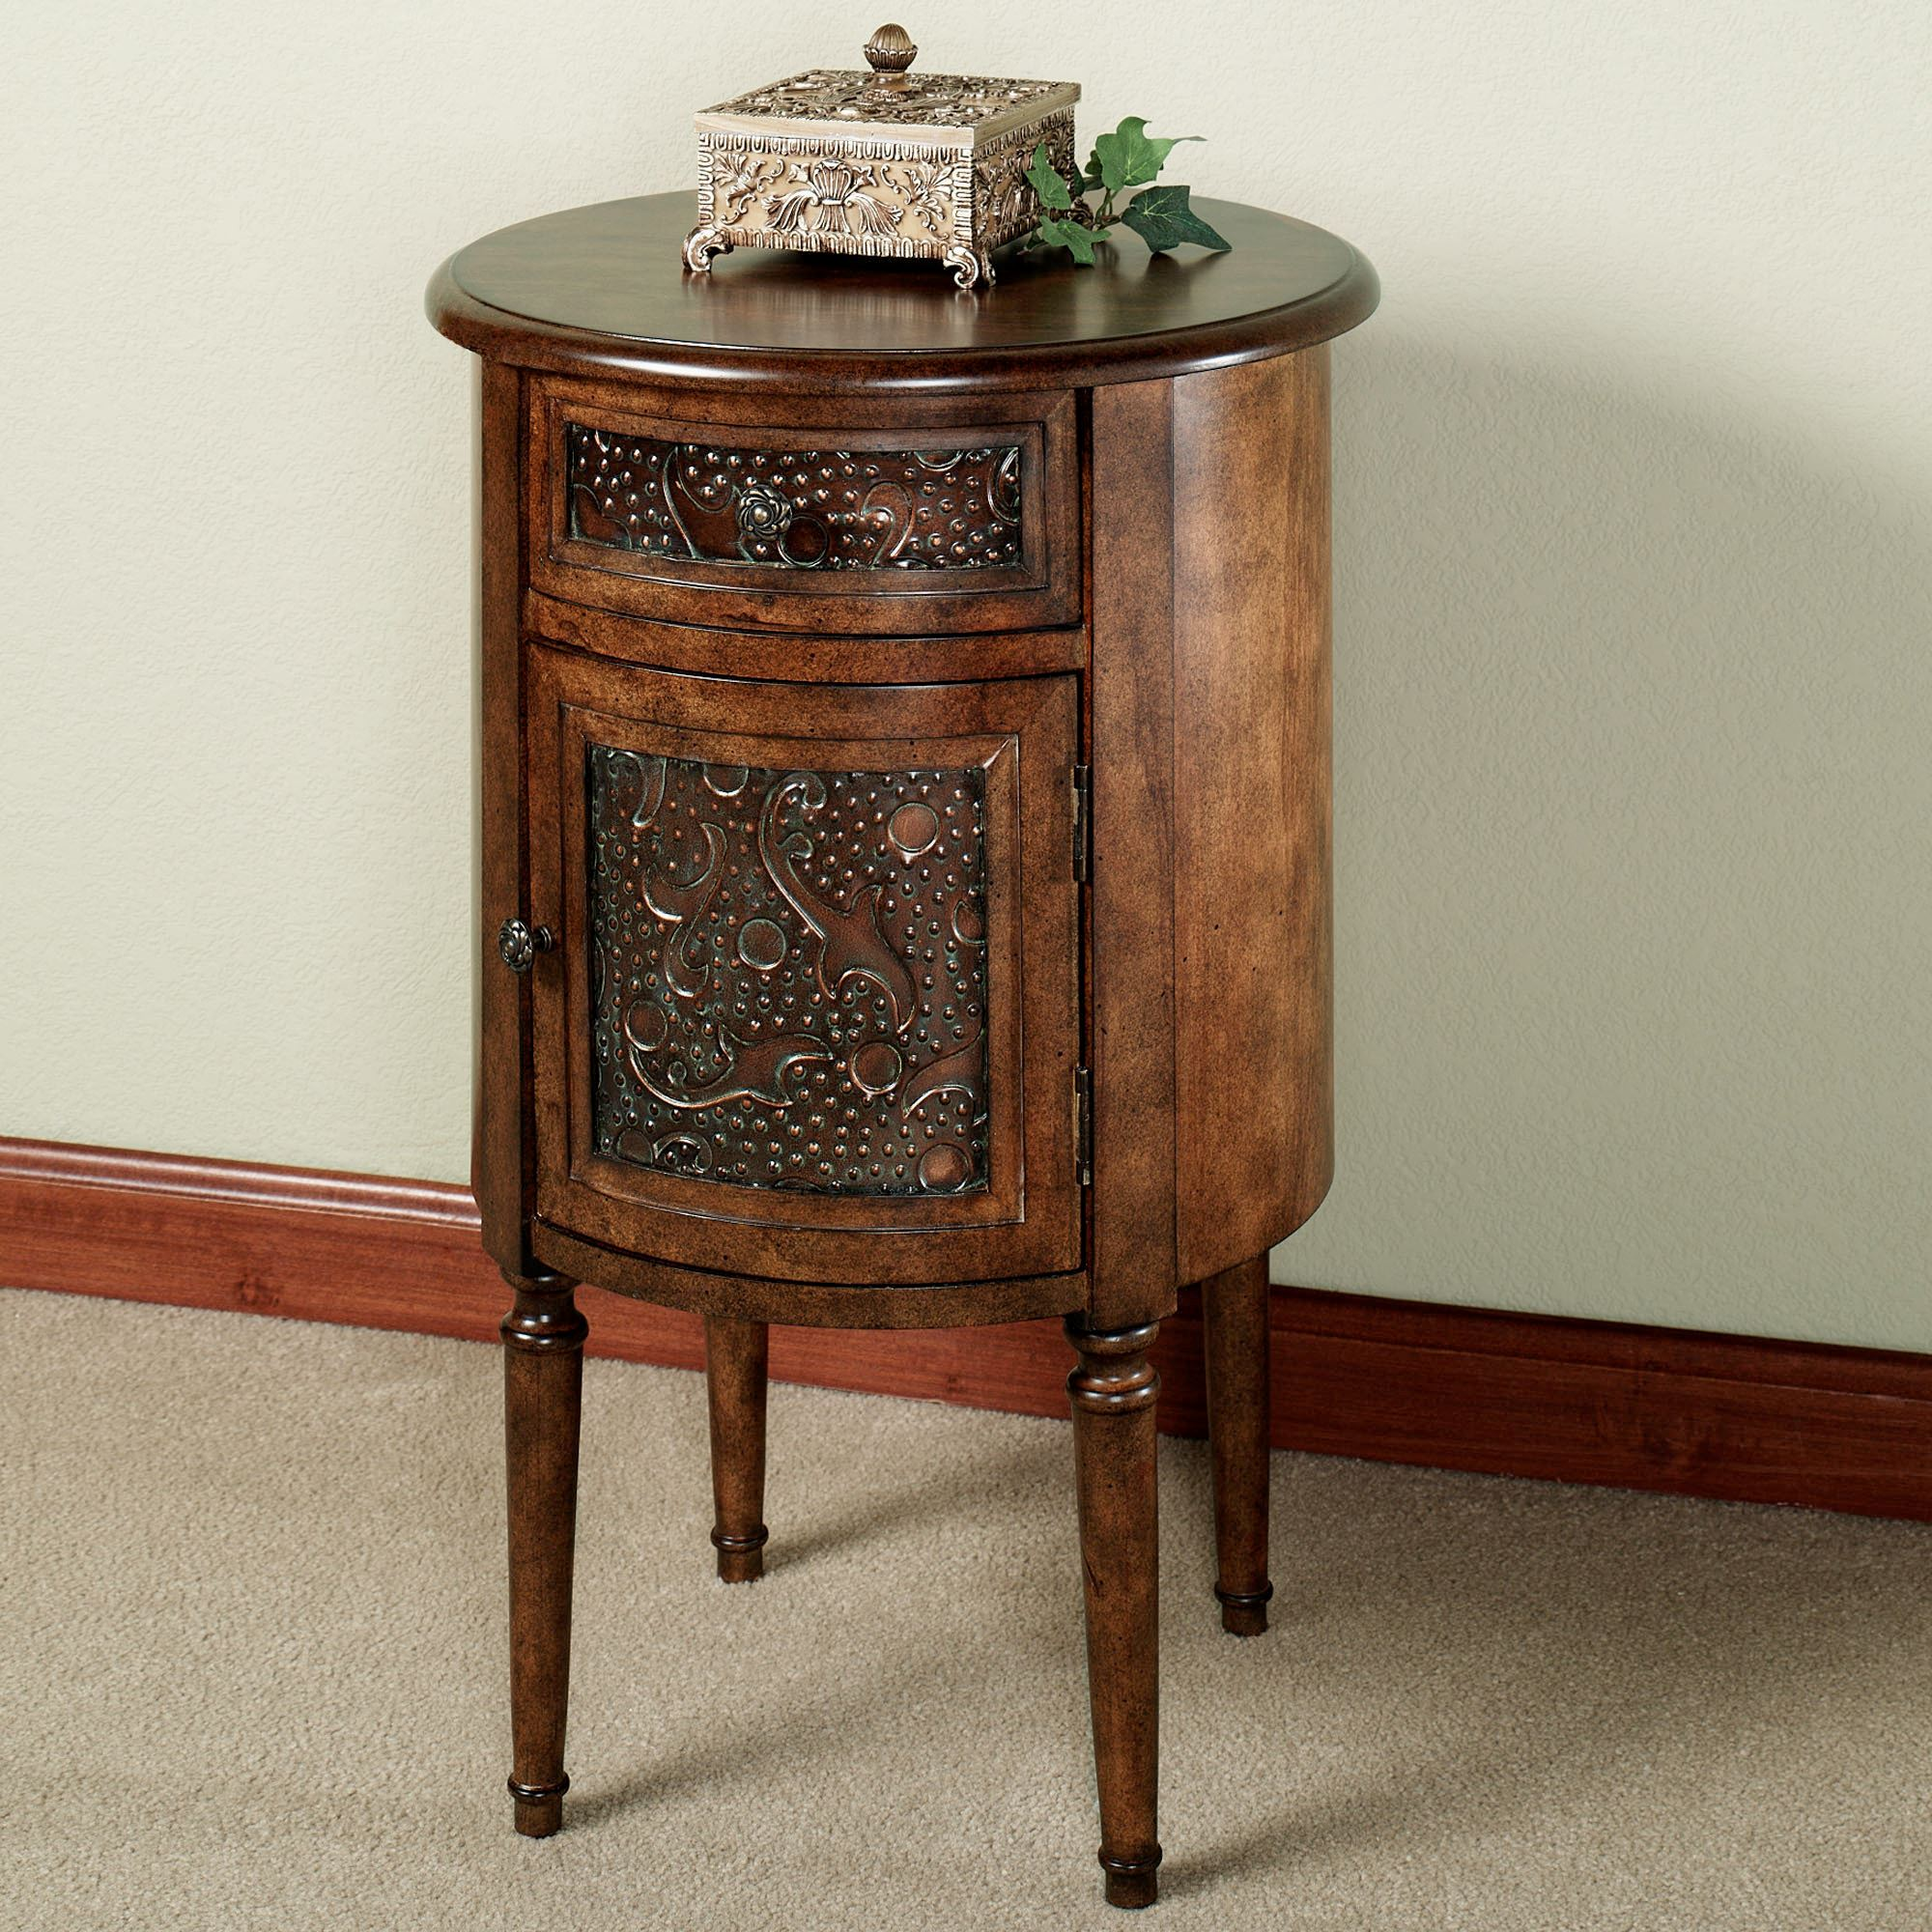 lombardy round storage accent table unique small tables touch zoom windham one door cabinet decorative lamps corner for hallway threshold rustic hammered copper side hall and